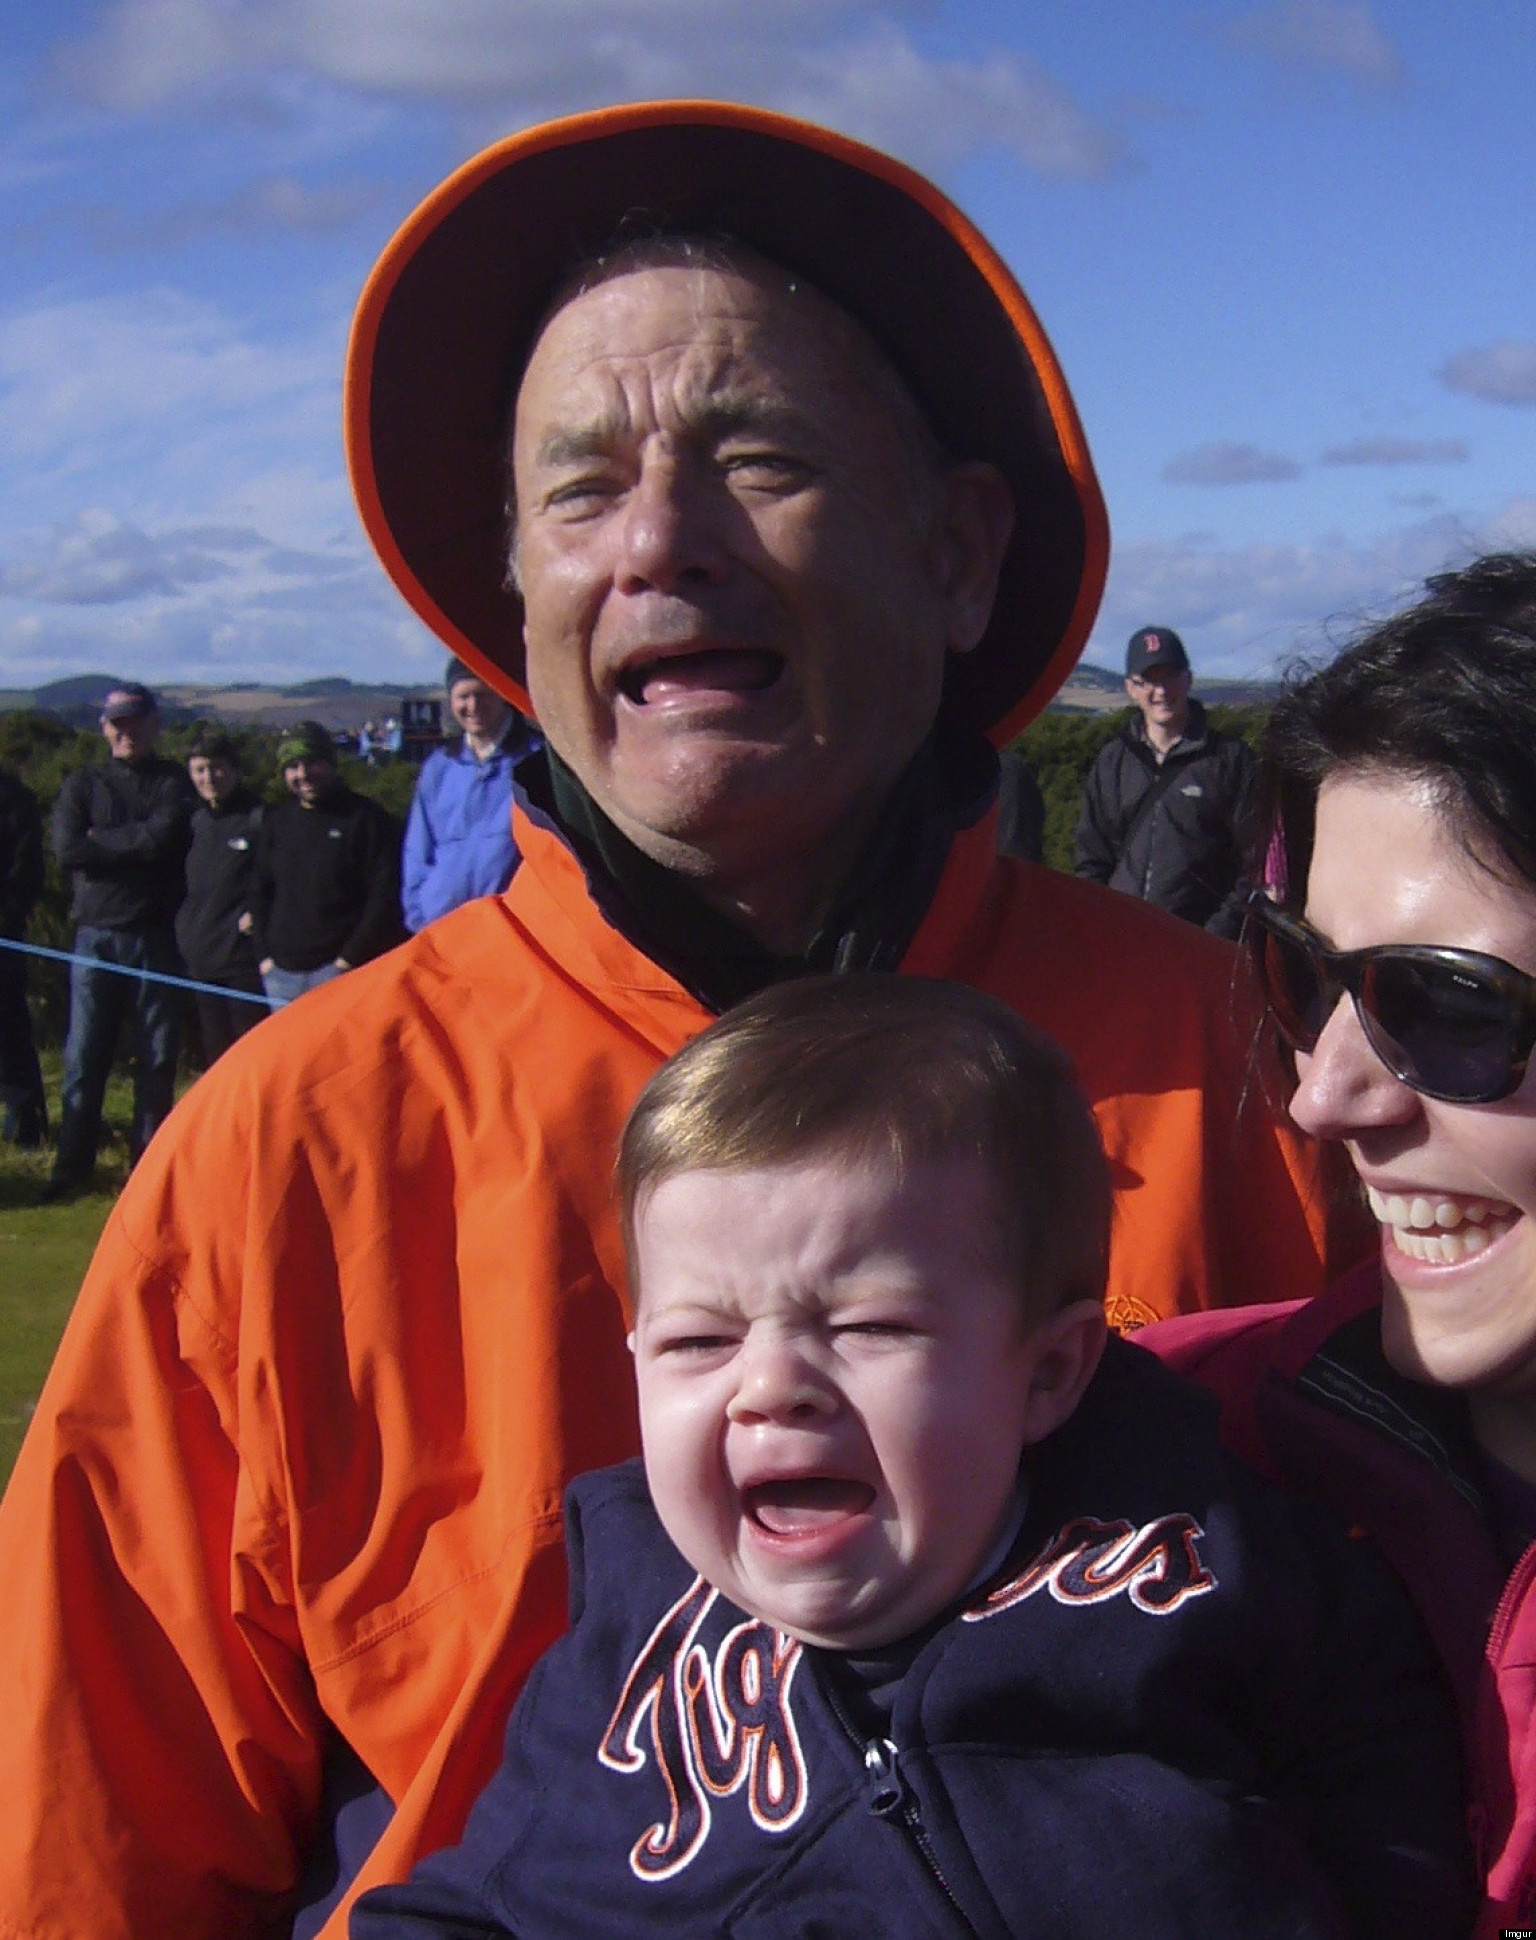 LOOK: Bill Murray Is Not Impressed By Baby Who Doesn't Like Him Either